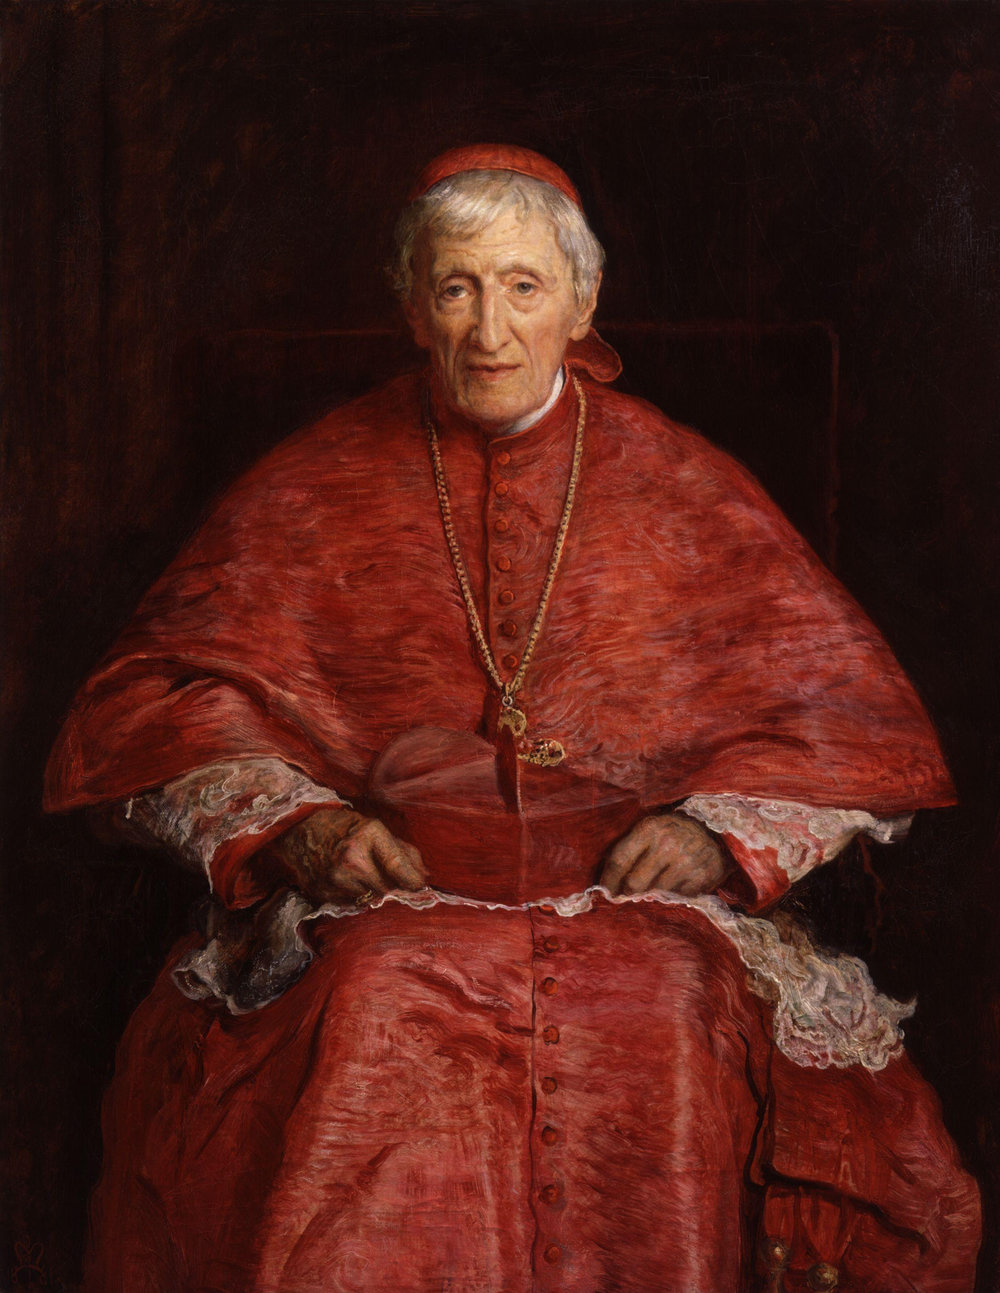 JOHN HENRY NEWMAN - 1801-1890CARDINAL, WRITER, AND FATHER OF THE OXFORD MOVEMENT